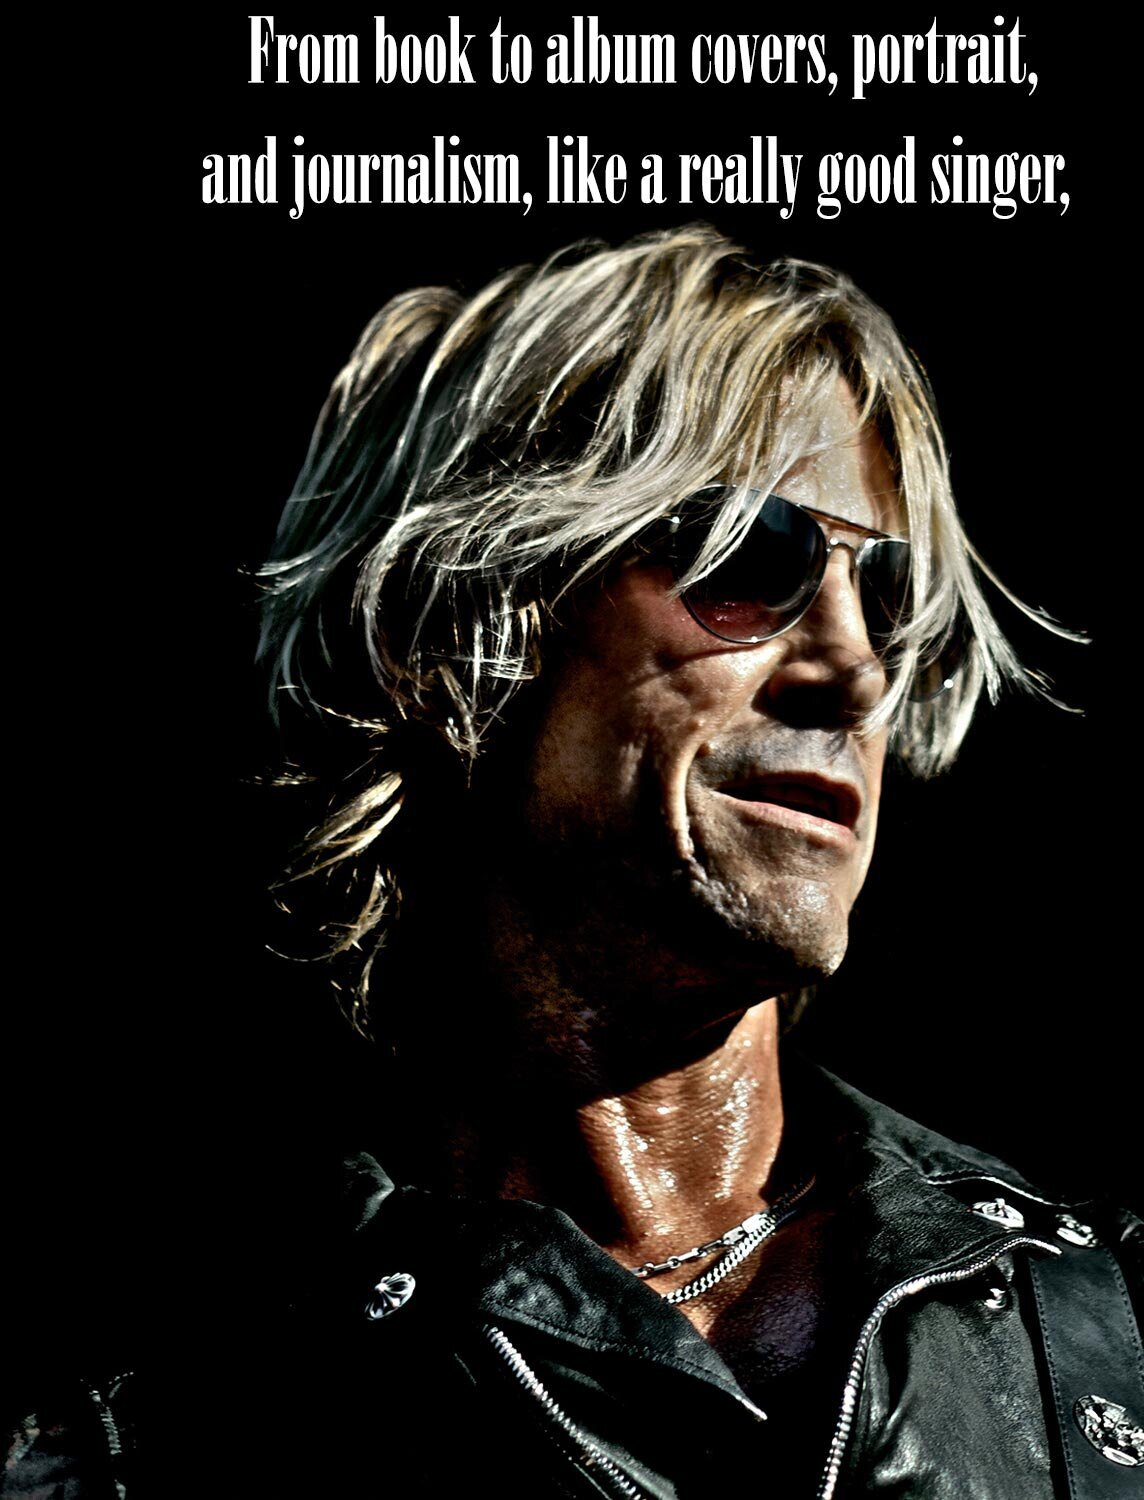 Duff McKagan photo featured in The Hollywood Dog article about Mark Maryanovich Photography closeup Guns N Roses bassist wearing black leather vest and sunglasses page 7